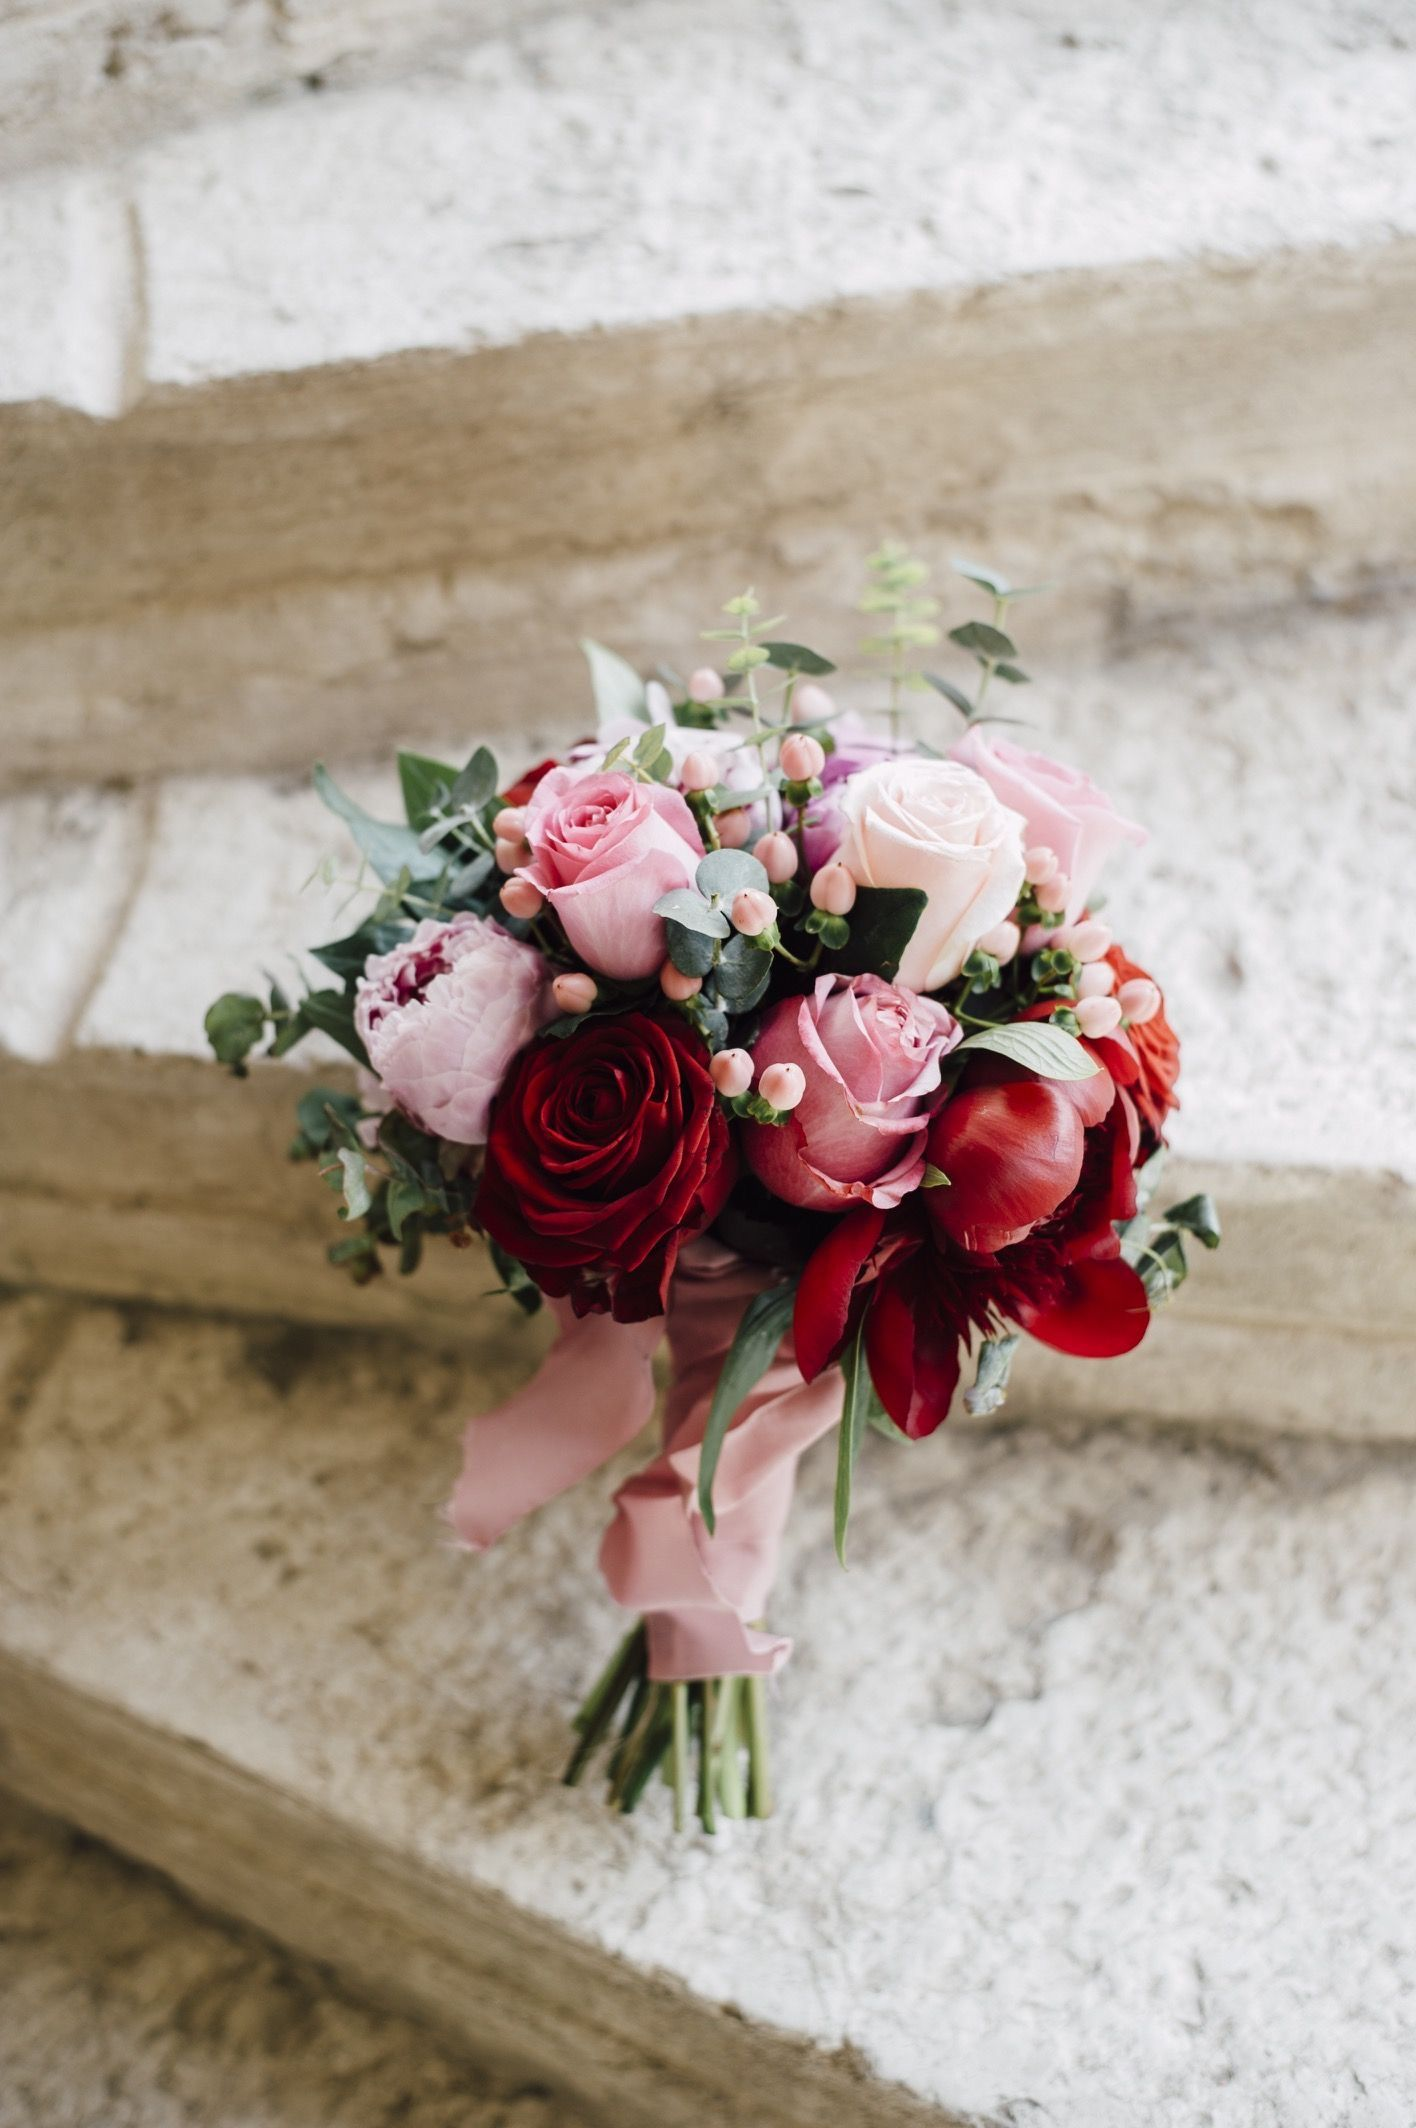 Pin by Marissa Gilbert on Our wedding ️ in 2020 Red